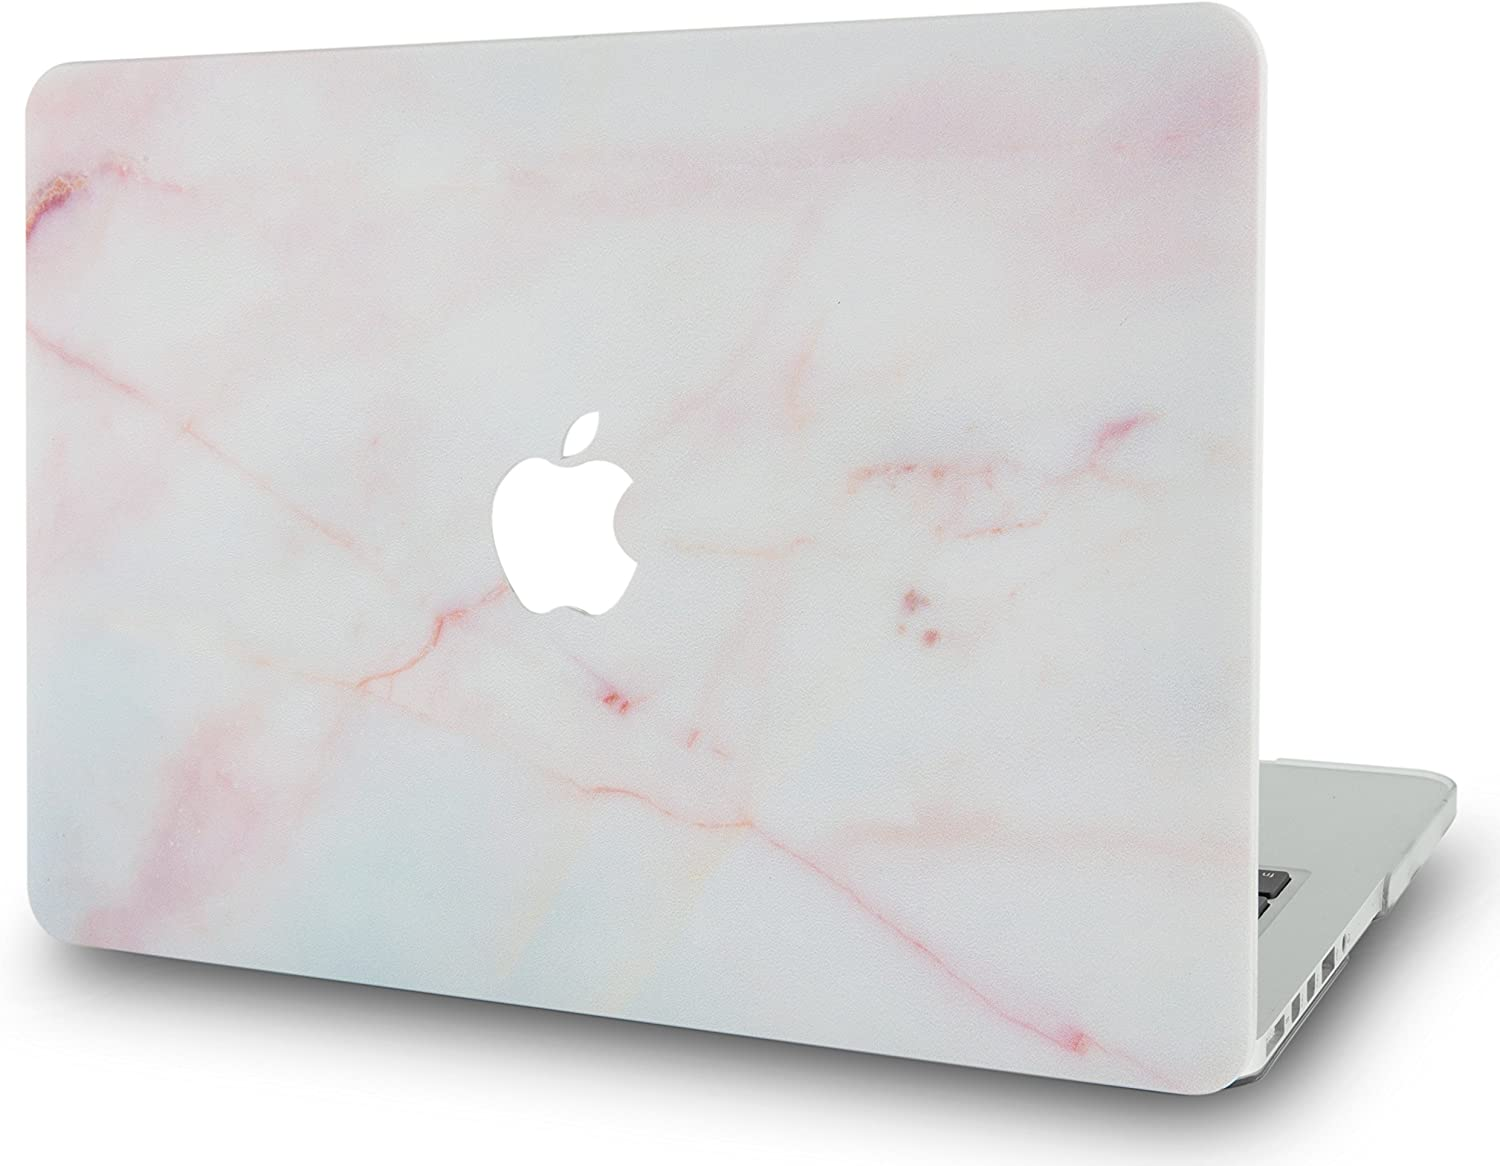 LuvCase Laptop Case for MacBook Air 13 Inch A1466 / A1369 (No Touch ID) Rubberized Plastic Hard Shell Cover (Pink Marble)